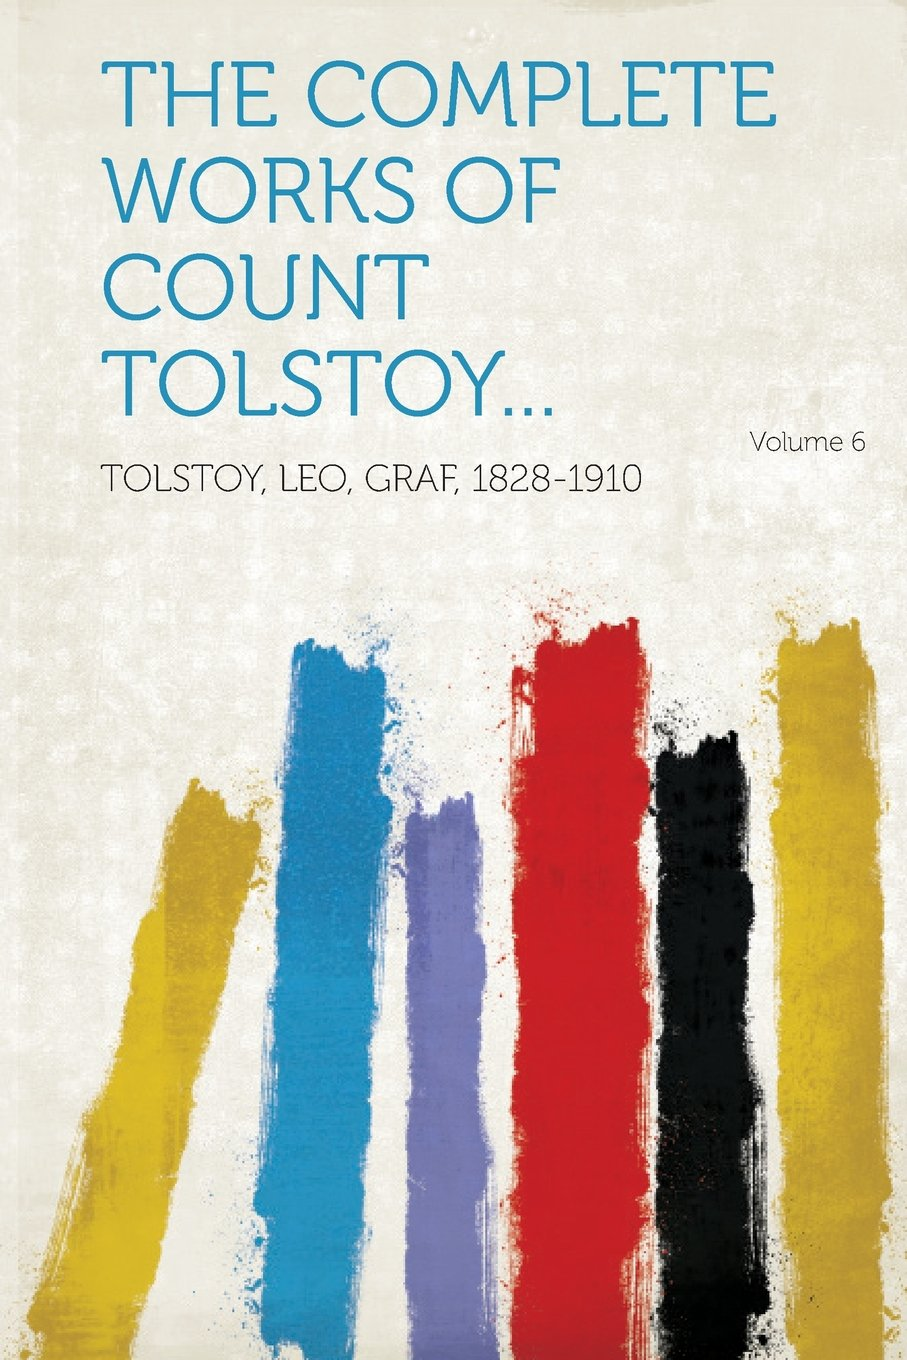 The Complete Works of Count Tolstoy... Volume 6 pdf